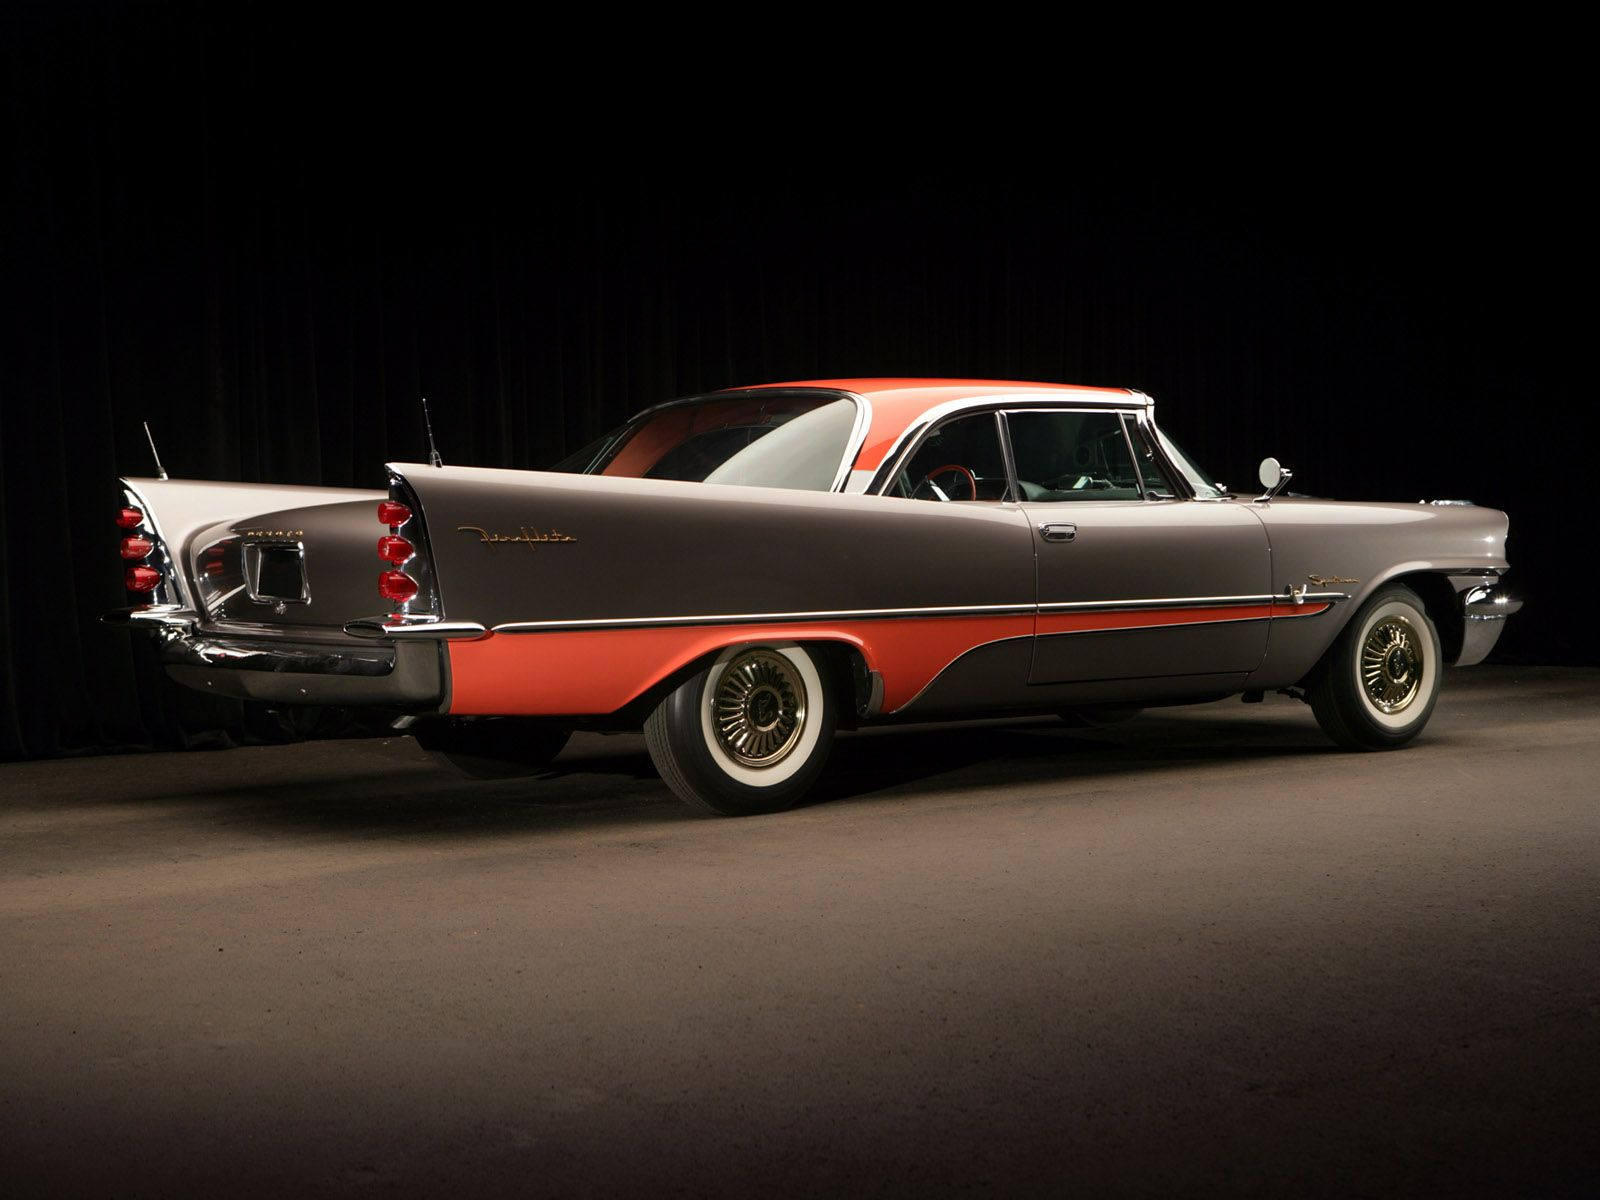 1956 desoto firedome seville 4 door hardtop 1 of 10 - Desoto Fireflite 2 Door Hardtop 1957 Chrysler Desoto Pinterest Cars And American Classic Cars